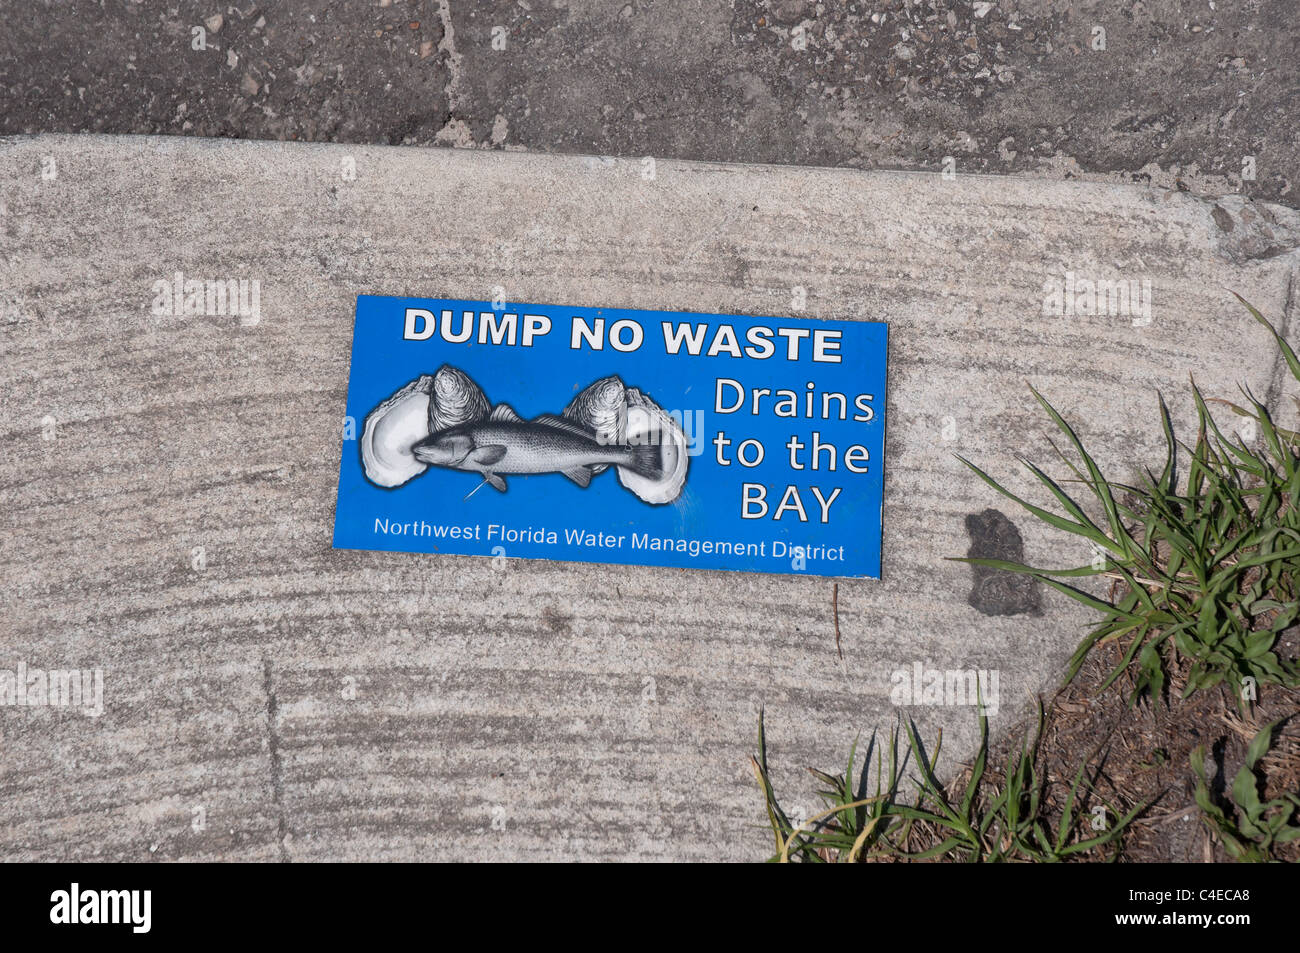 Florida Panhandle Appalachicola sign warning against polluted waste contaminating the coastal waters - Stock Image